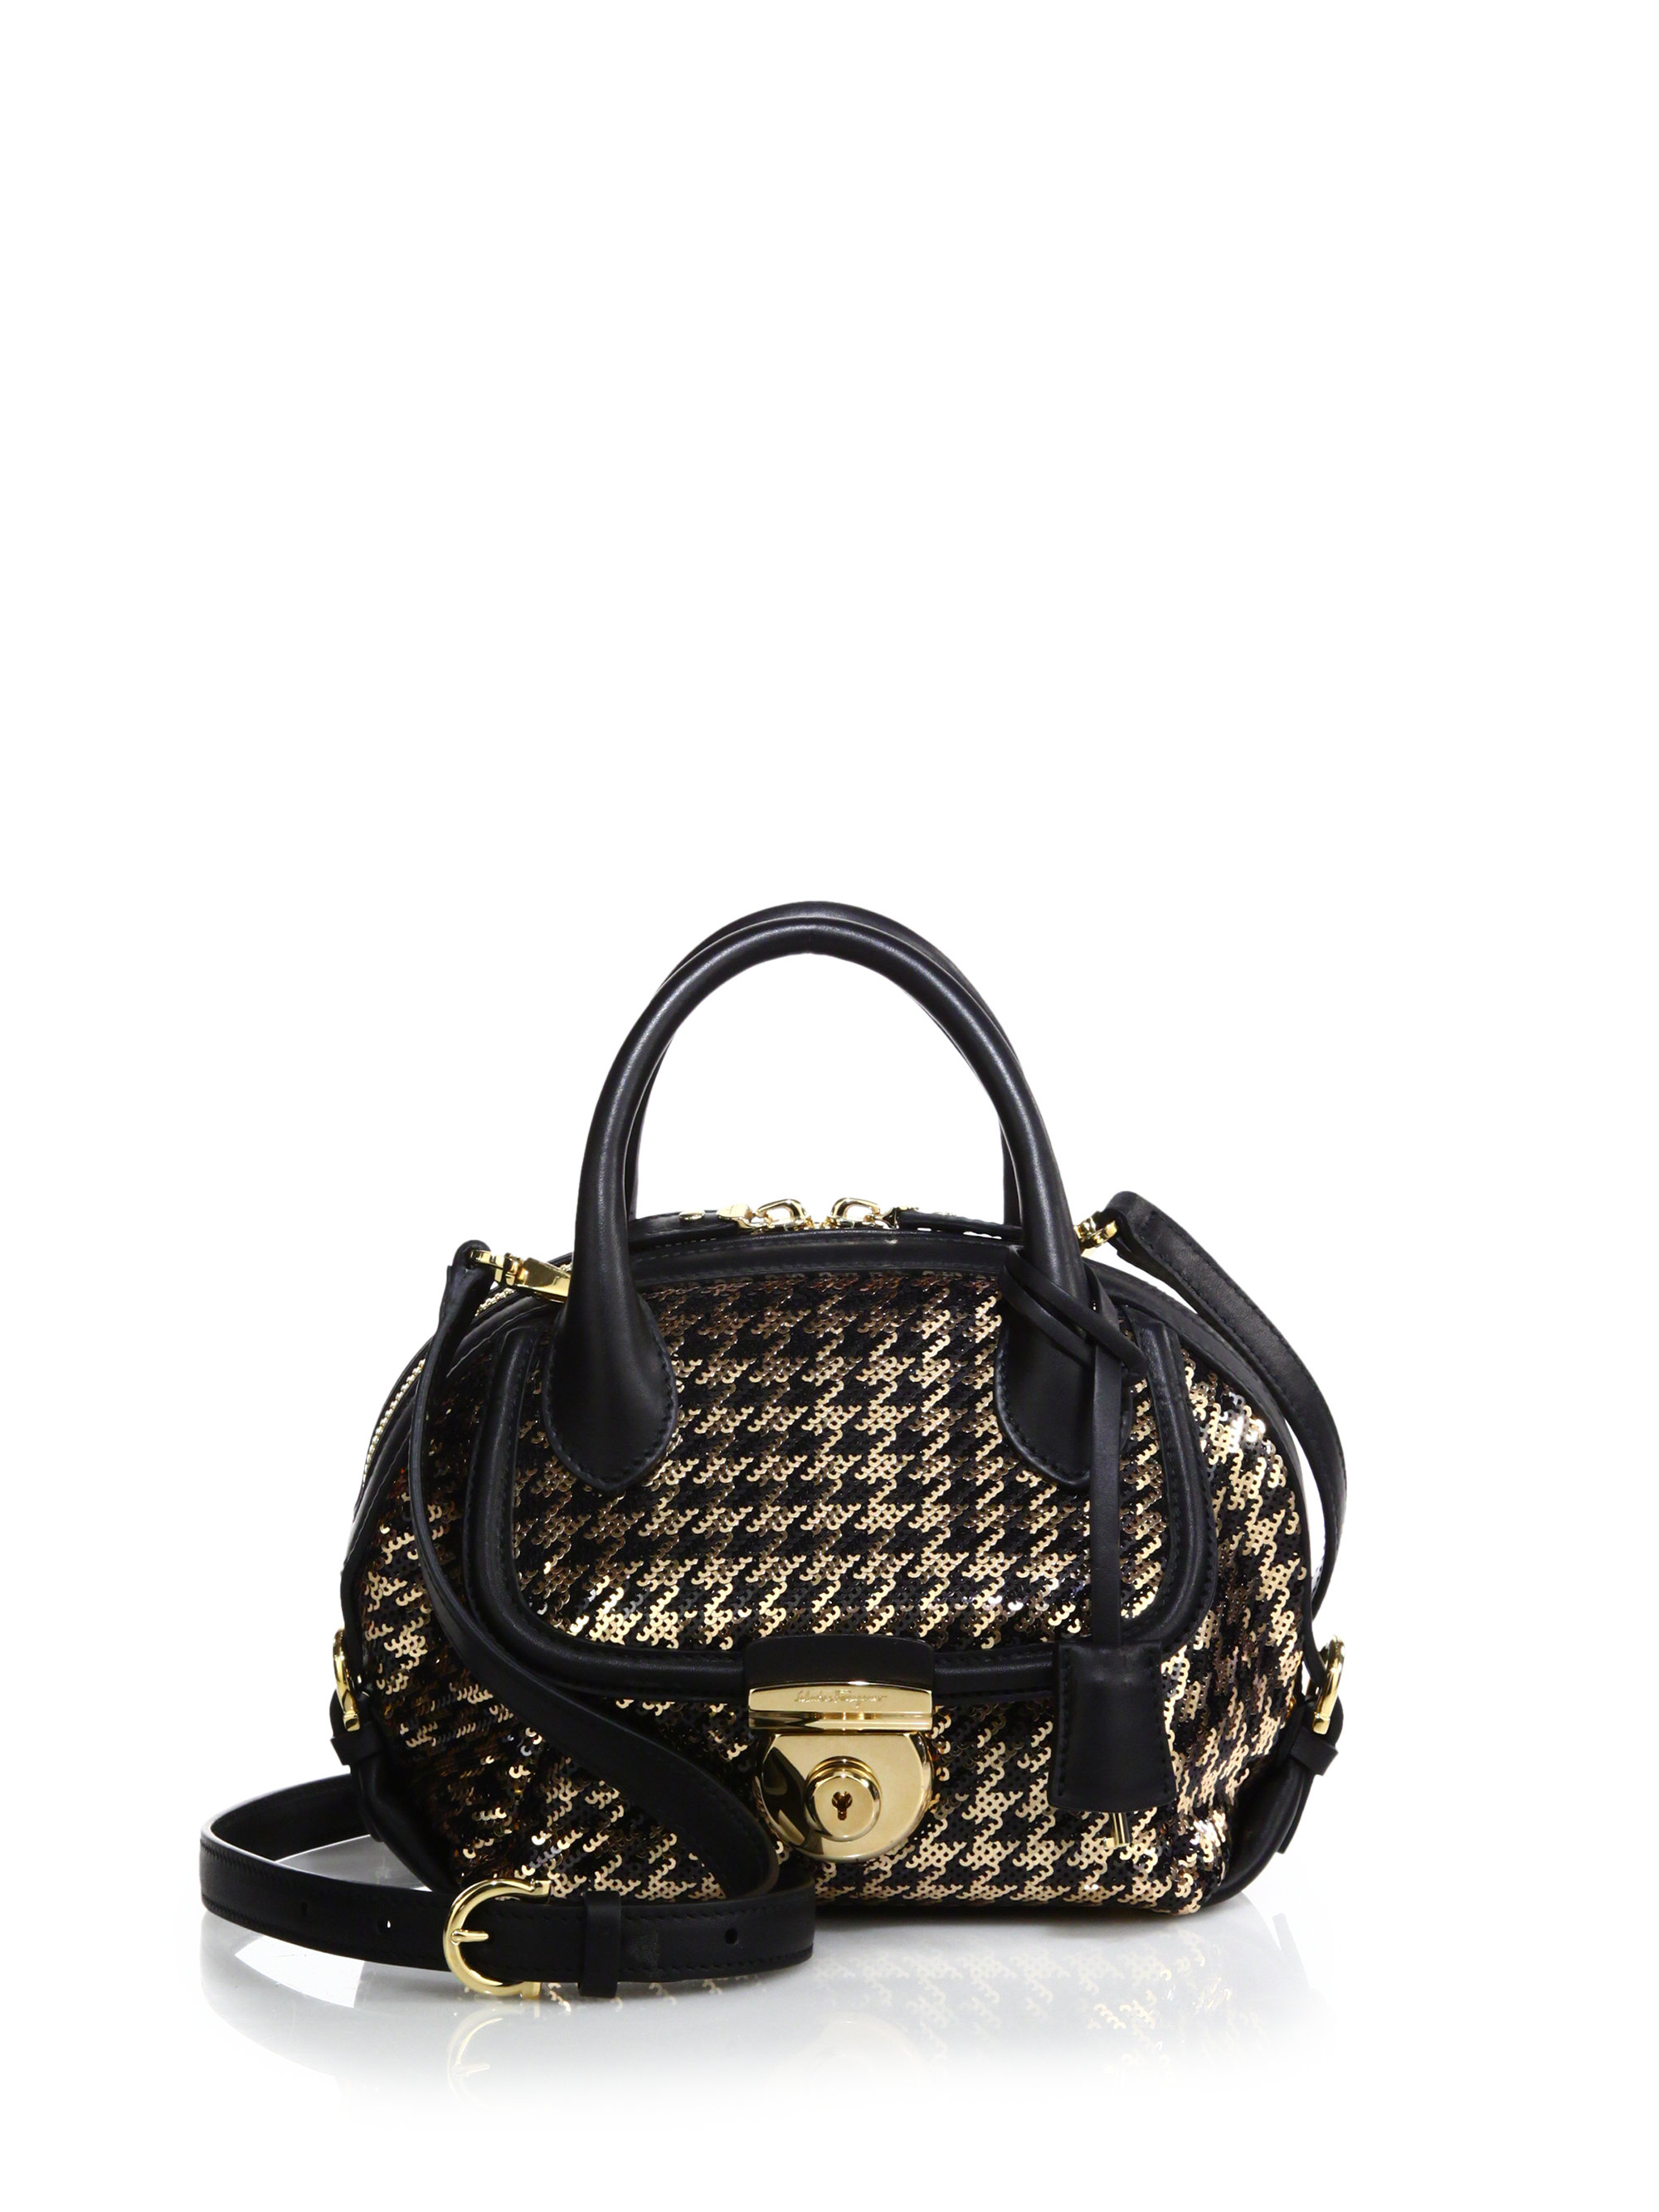 2333be1a7bf6 Lyst - Ferragamo Fiamma Mini Sequined Houndstooth Satchel in Metallic